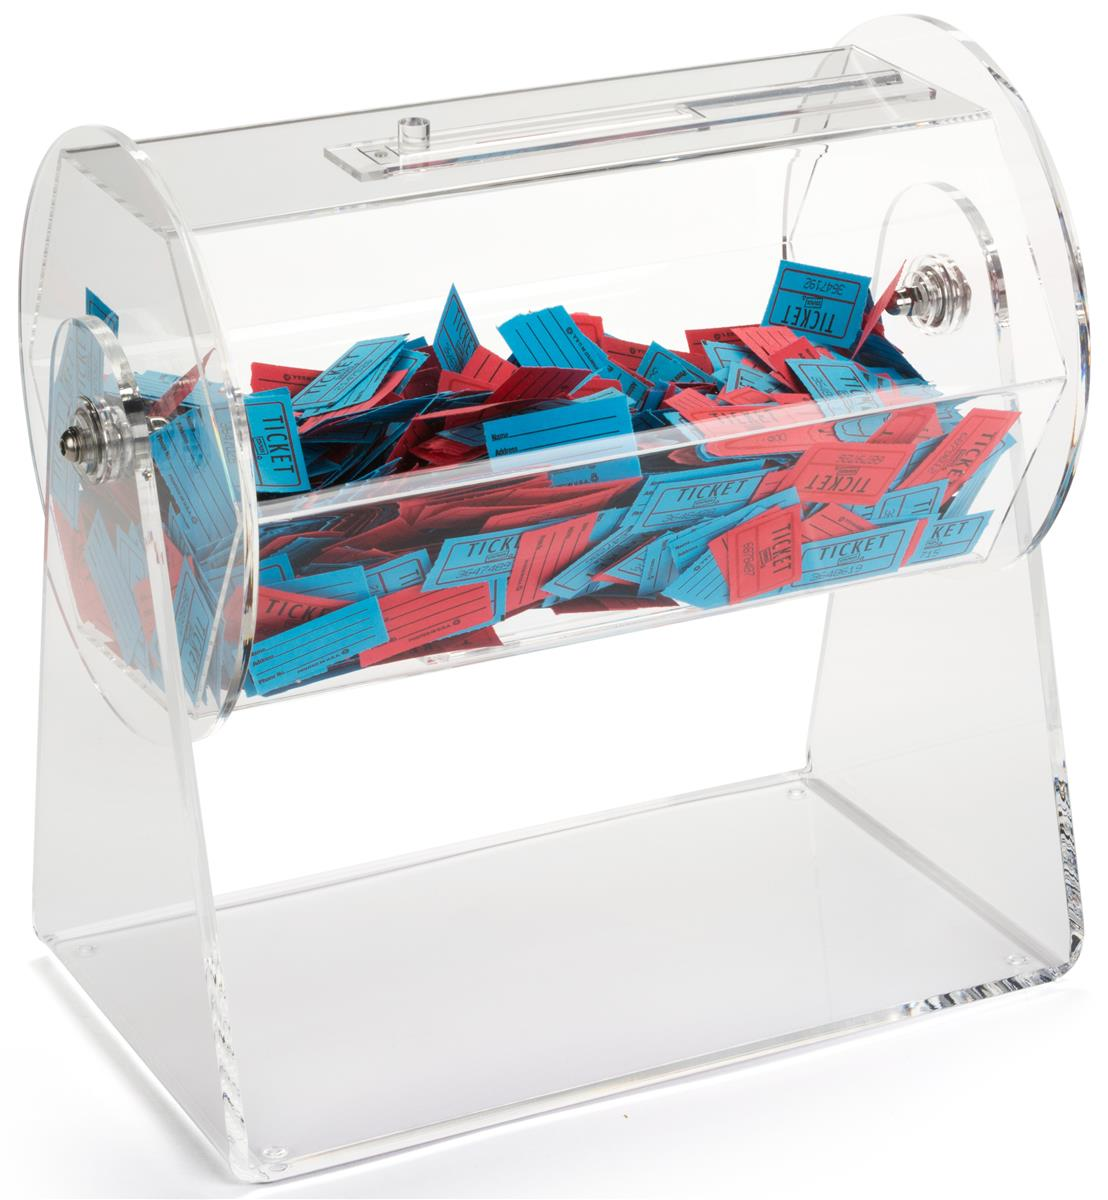 Locking Raffle Drum Acrylic Tumbler Display With Carry